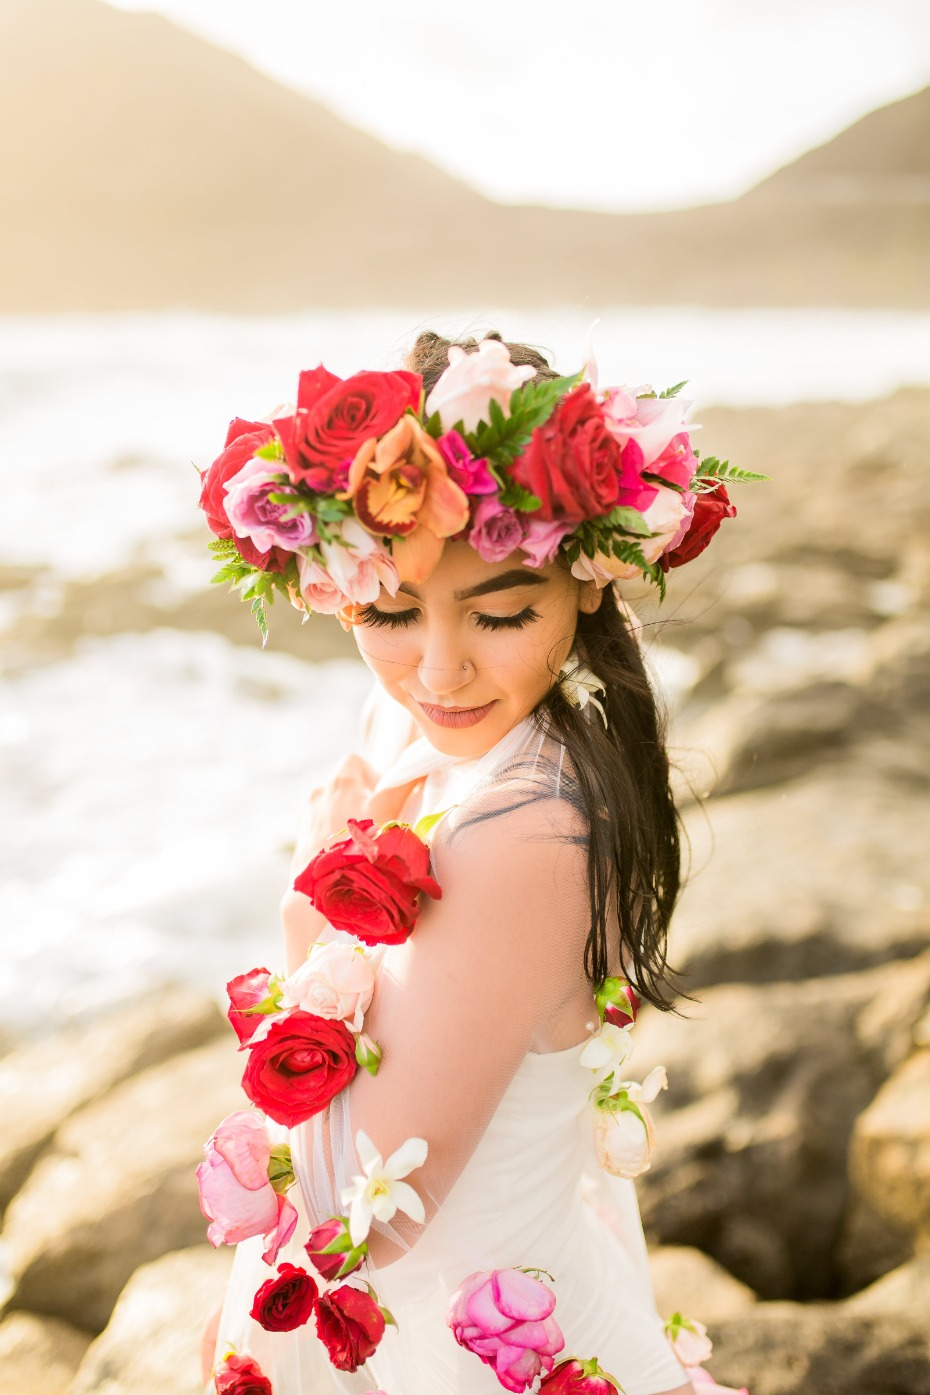 Boho bridal portrait session in Hawaii